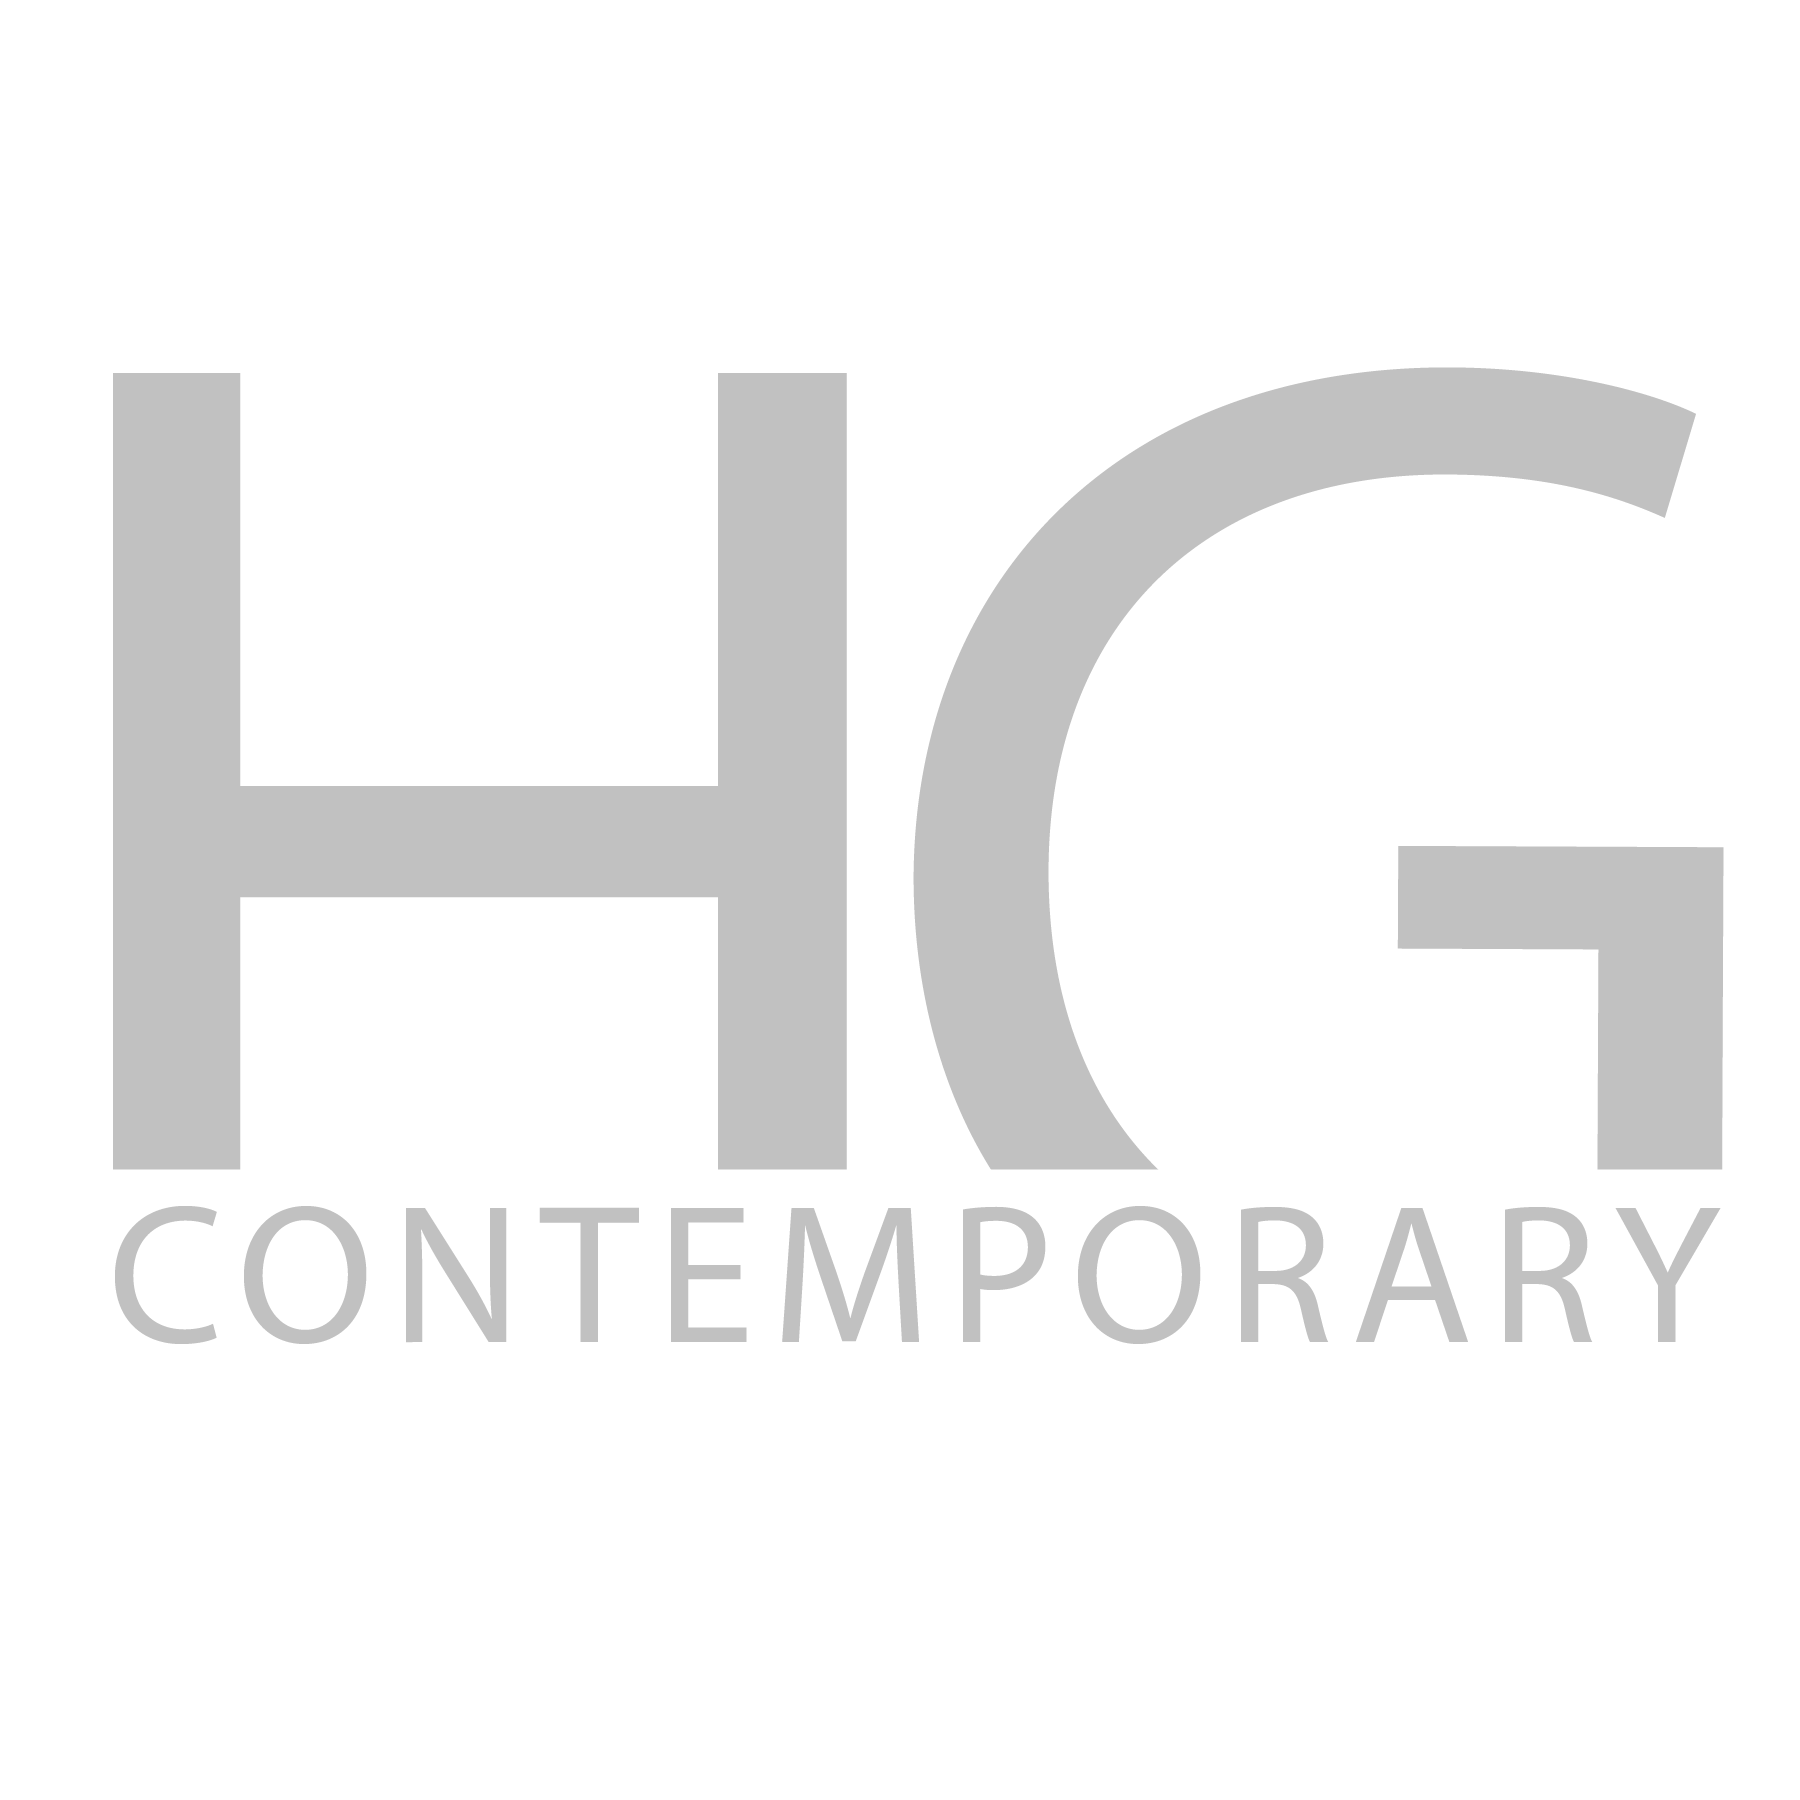 HG Contemporary